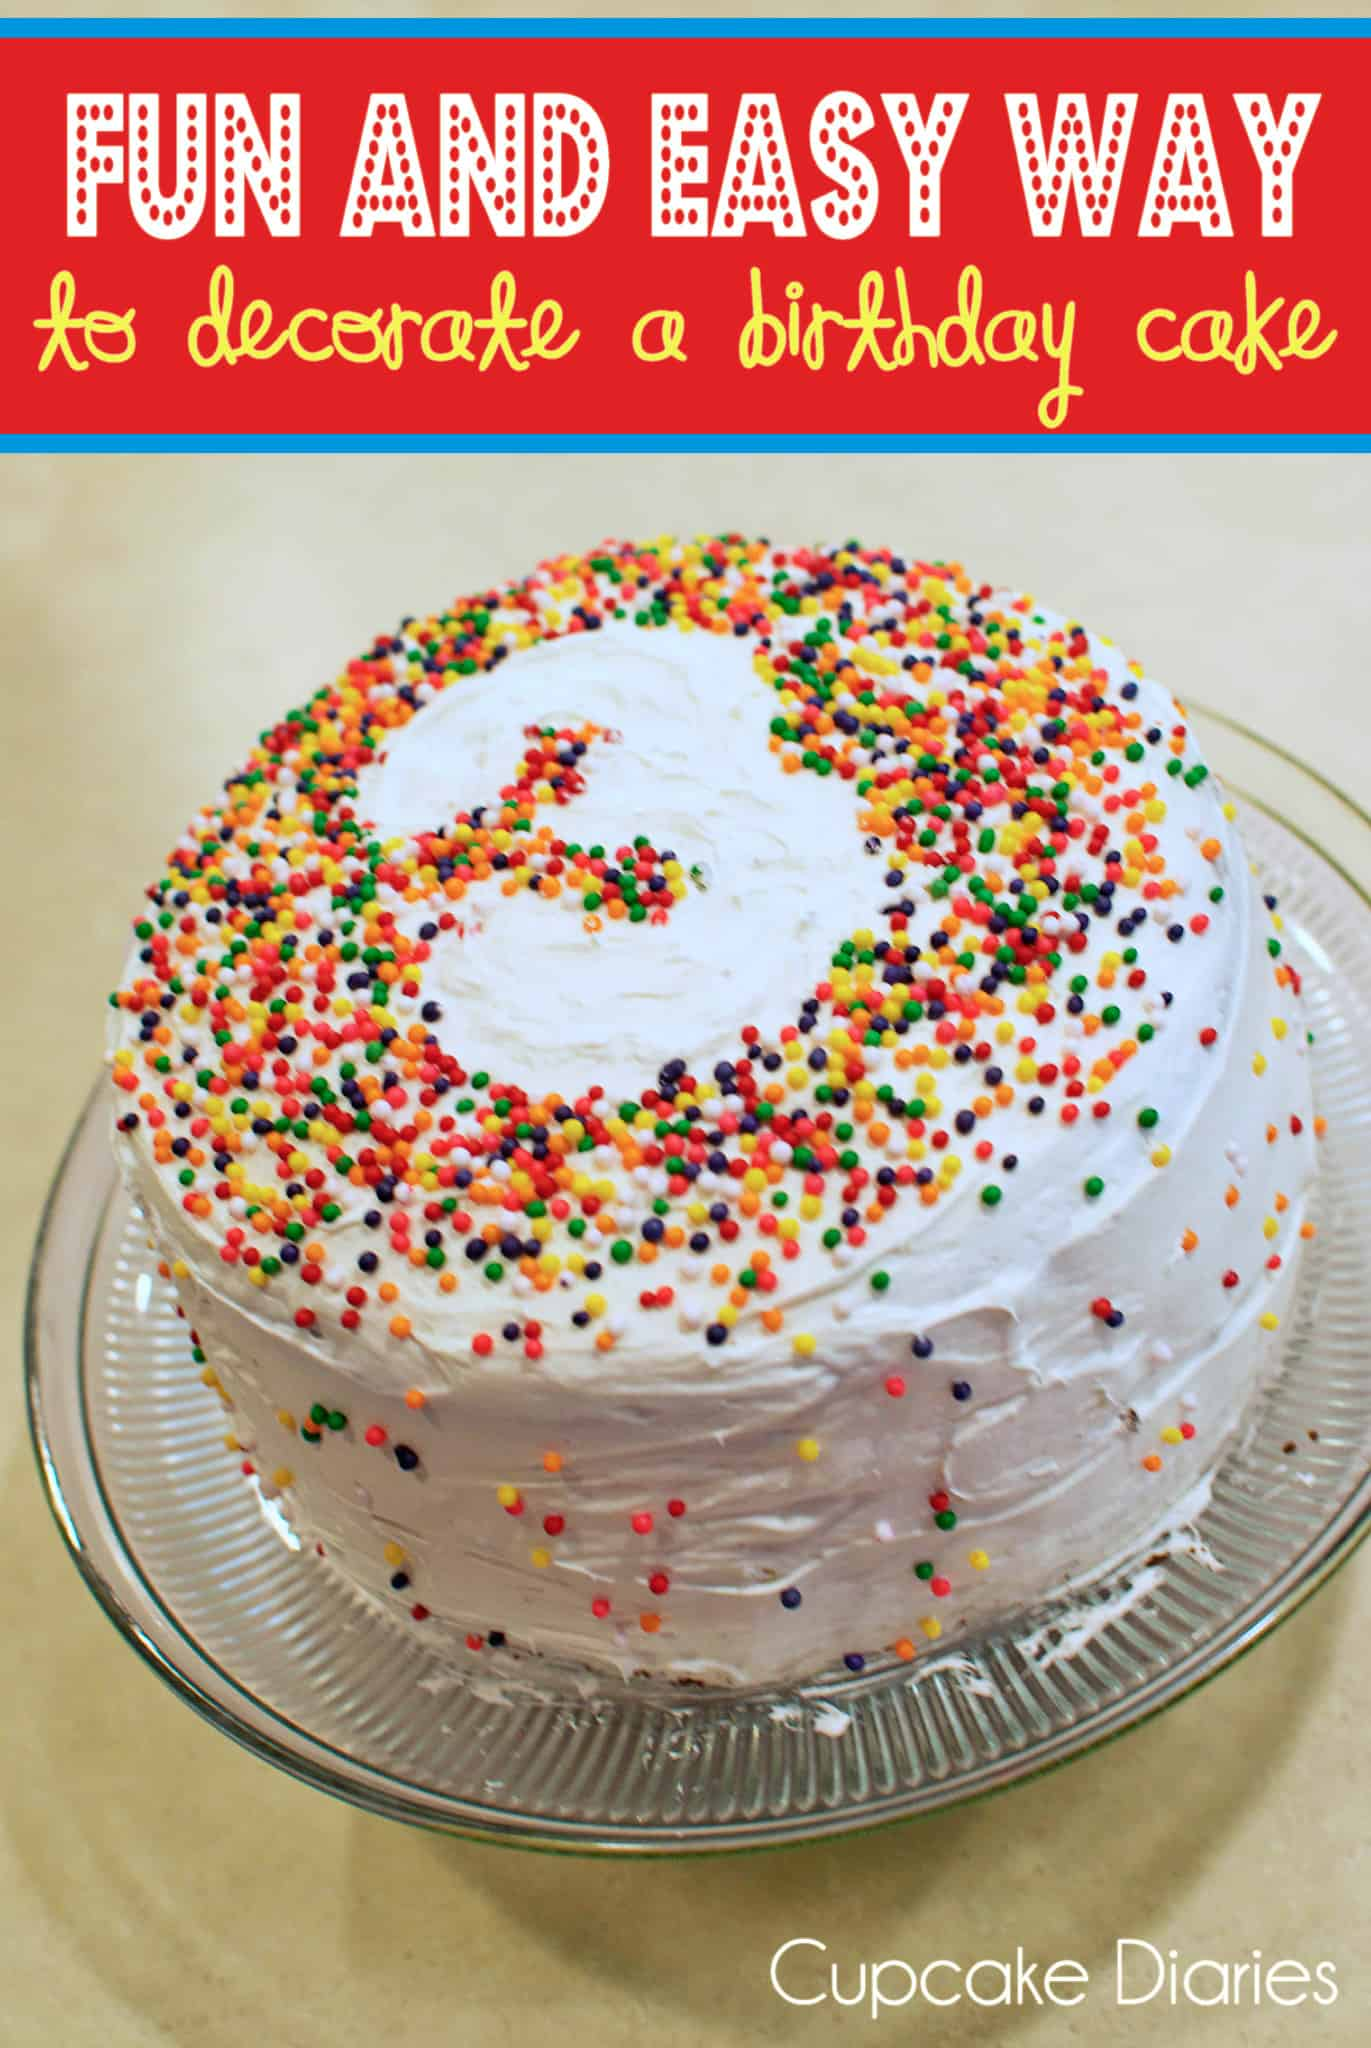 Birthday Cake Decoration Images : Fun and Easy Way to Decorate a Birthday Cake - Cupcake Diaries